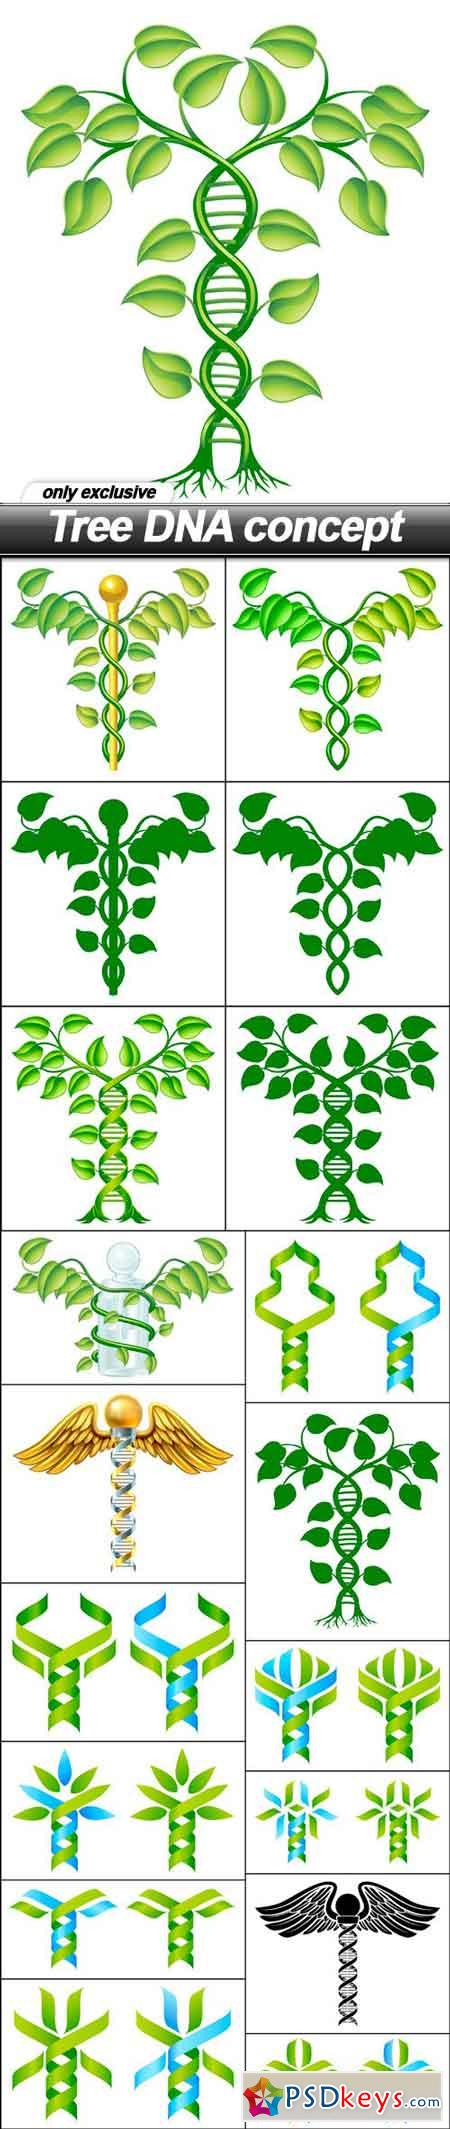 Tree DNA concept - 19 EPS